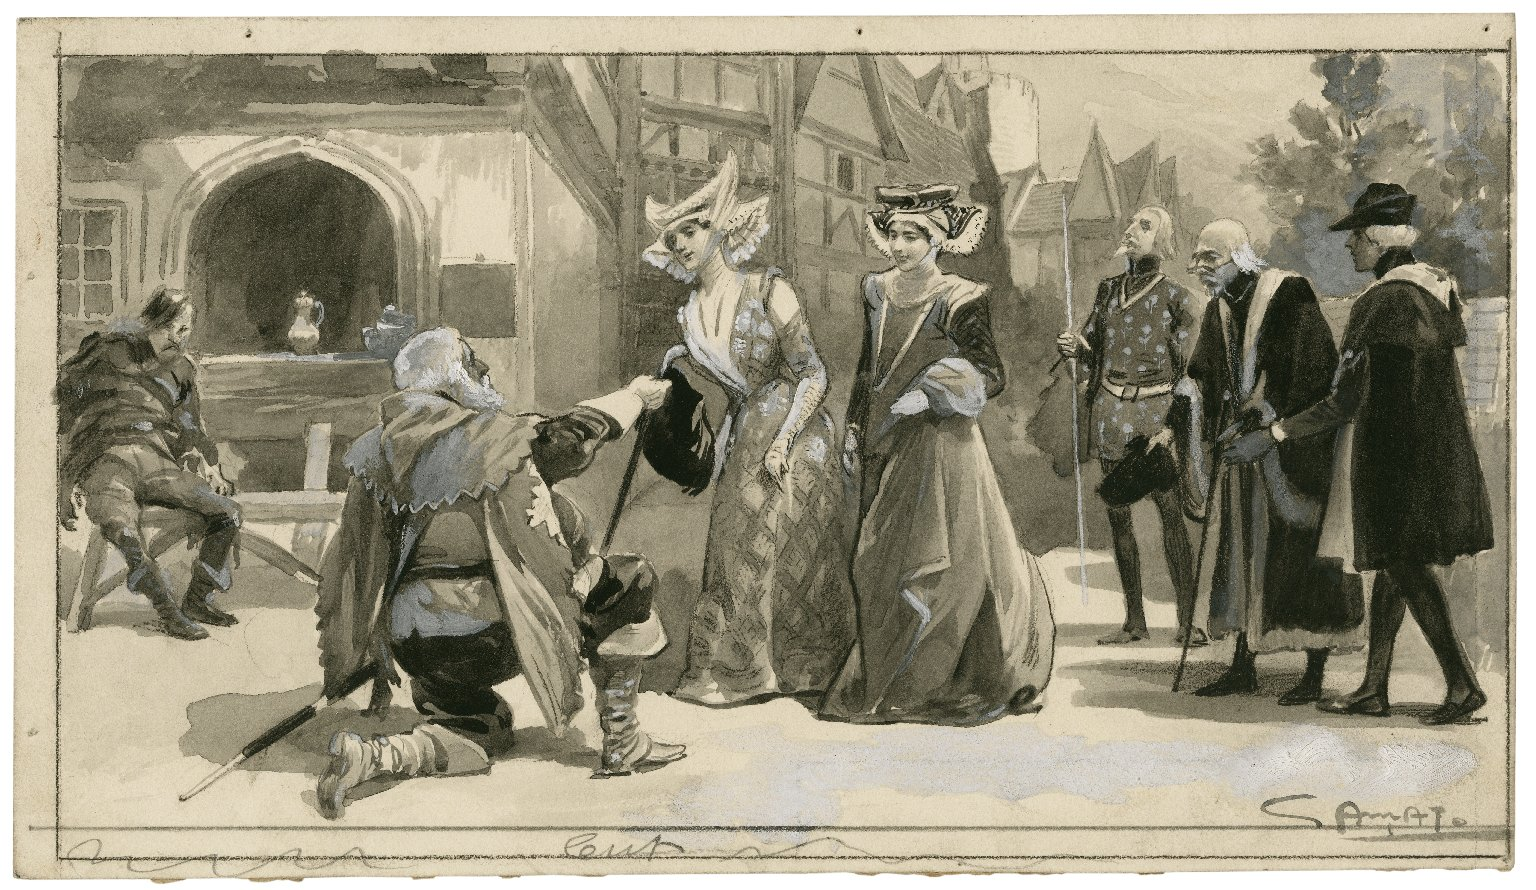 Merry wives of Windsor at Her Majesty's [Theatre] [graphic] / [C.?] Amat.